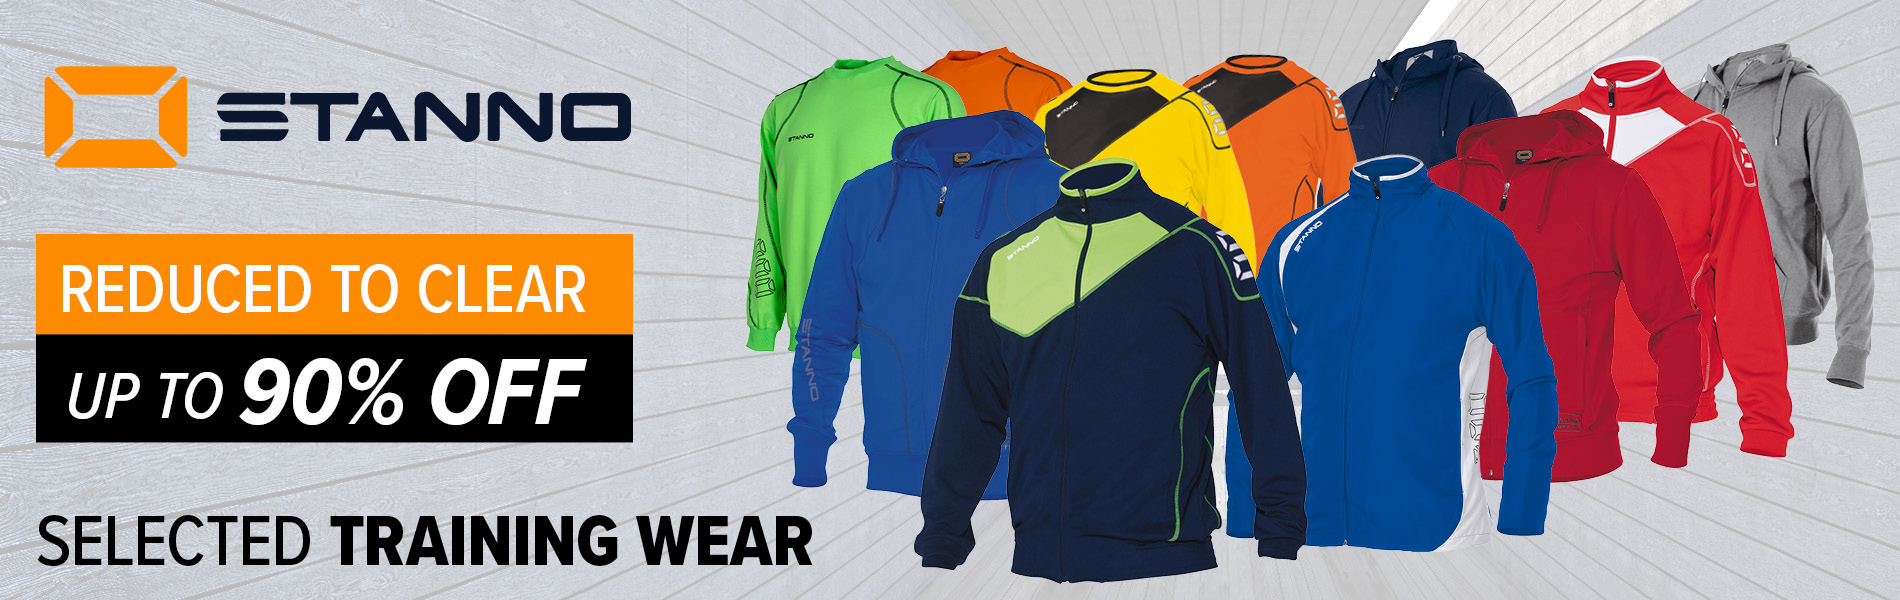 Stanno Trainingwear Clearance